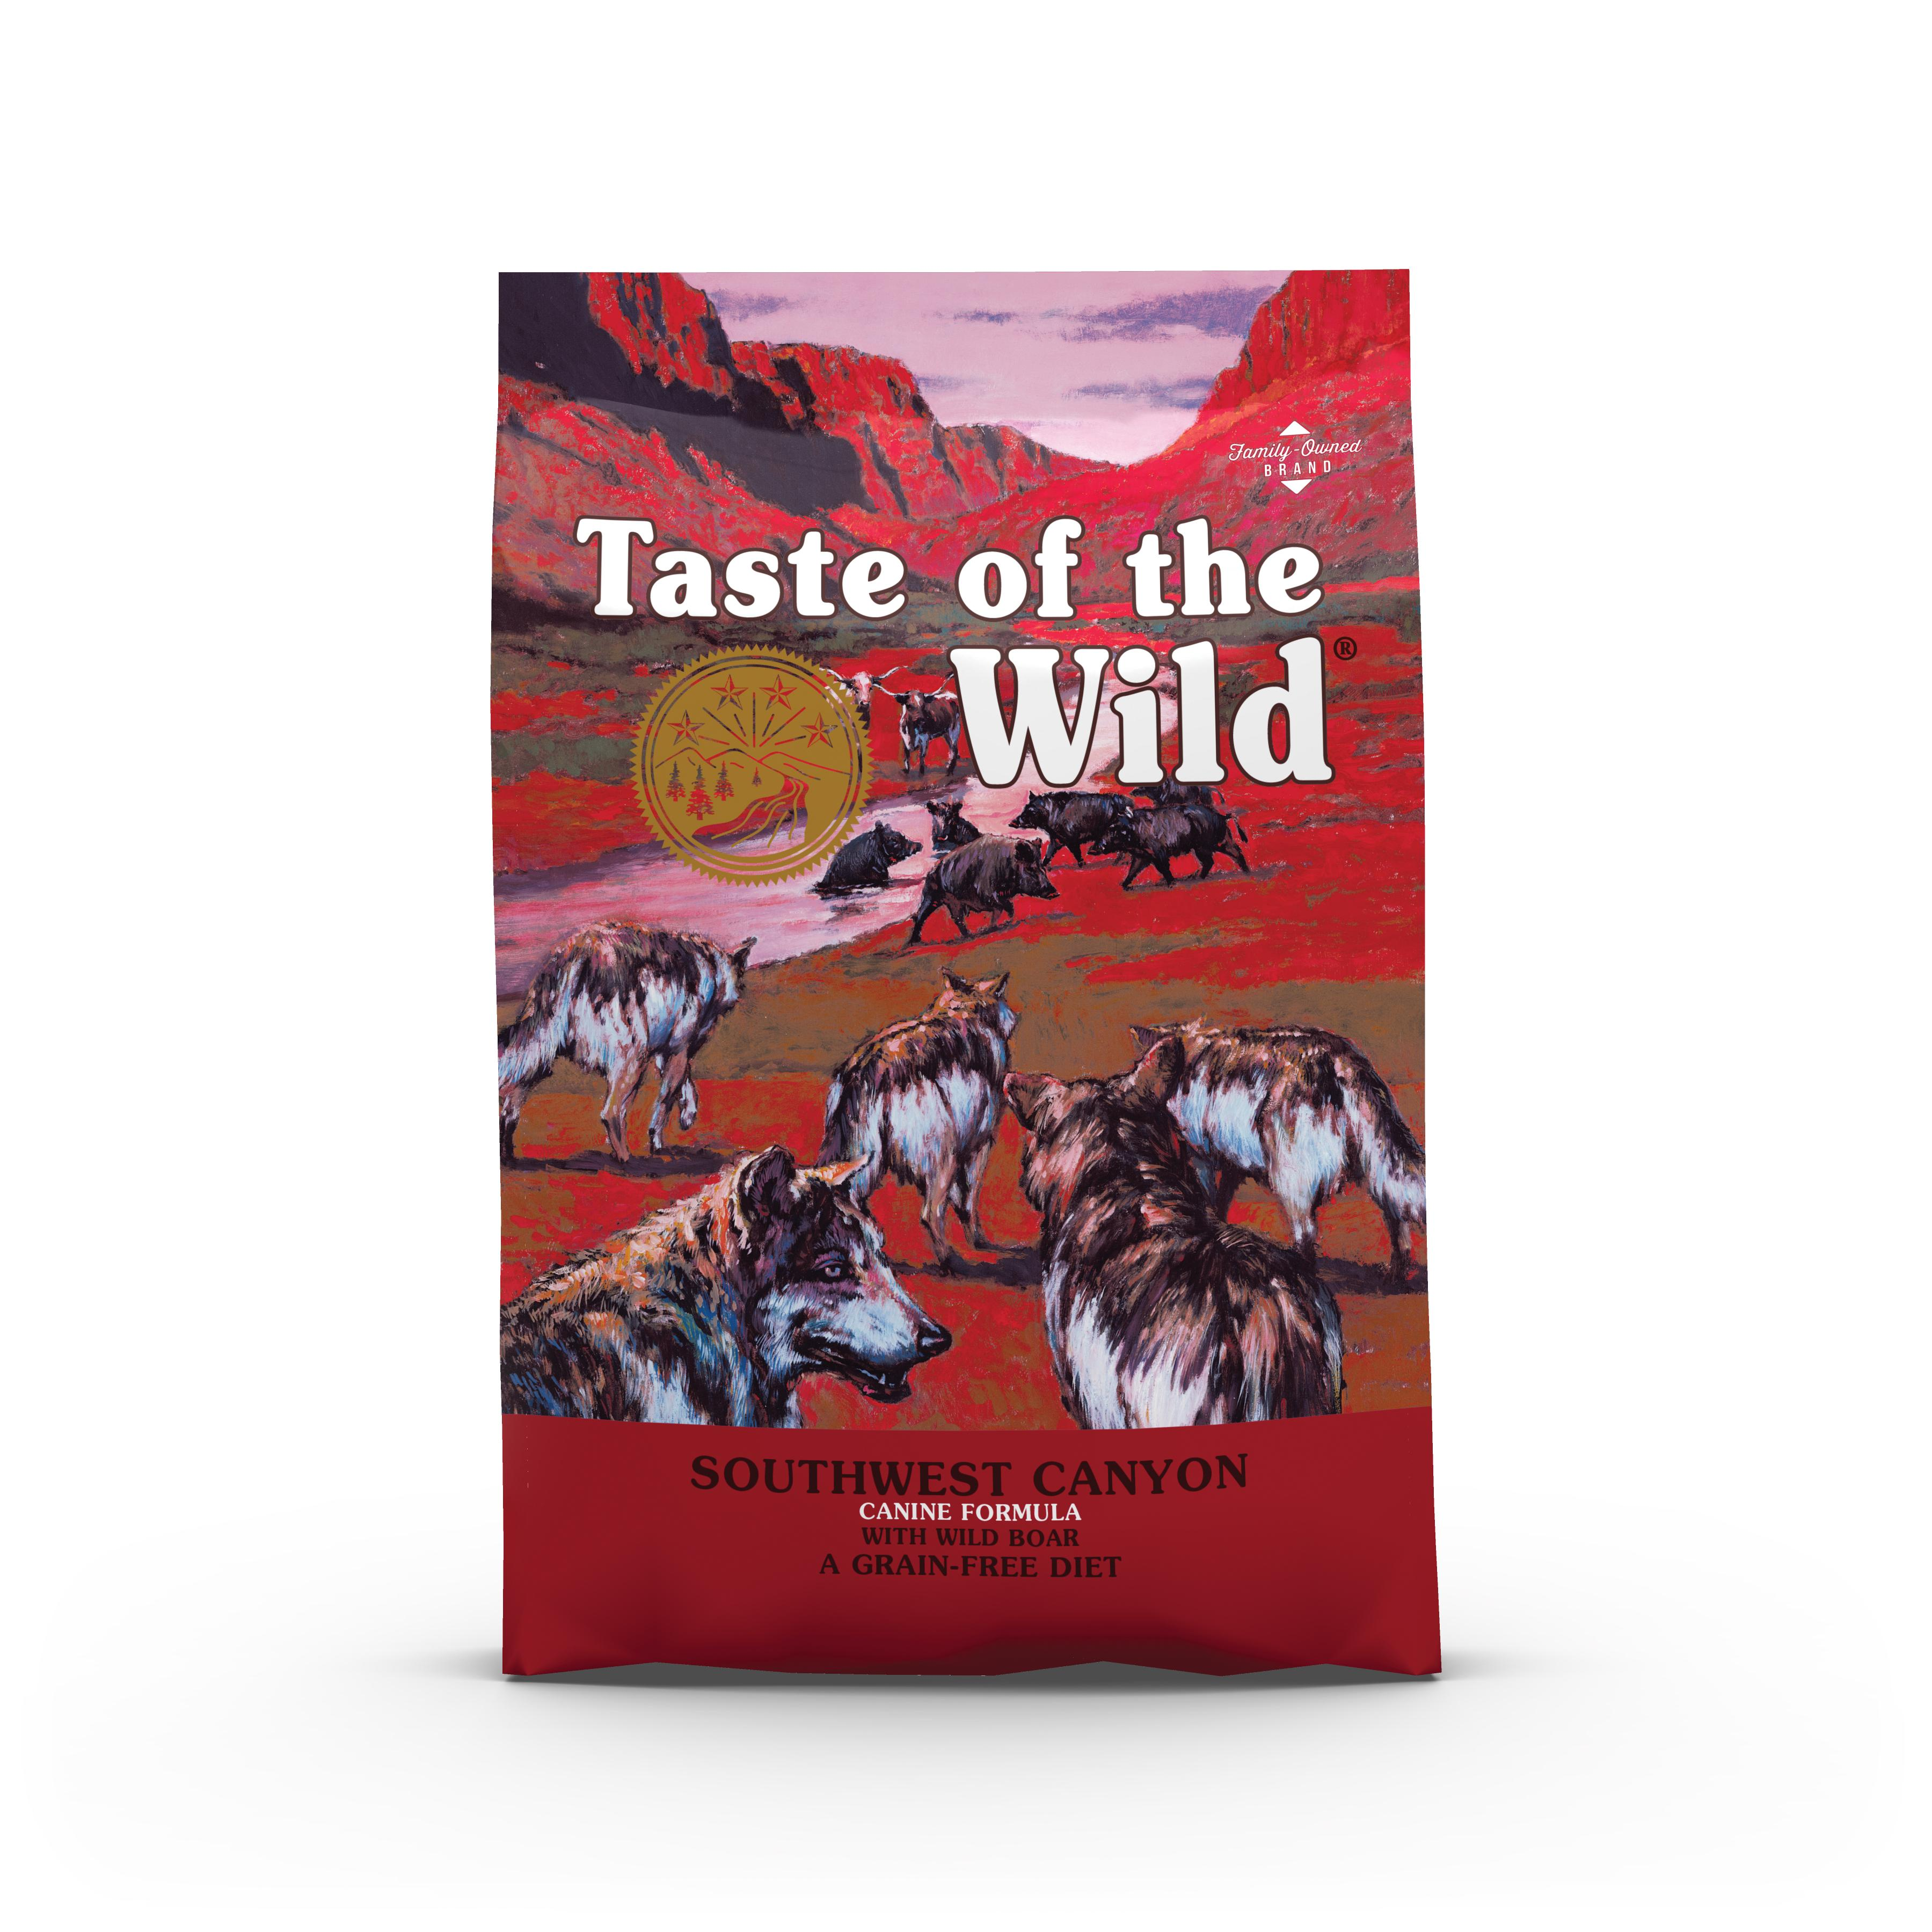 Taste of the Wild canyon dog food